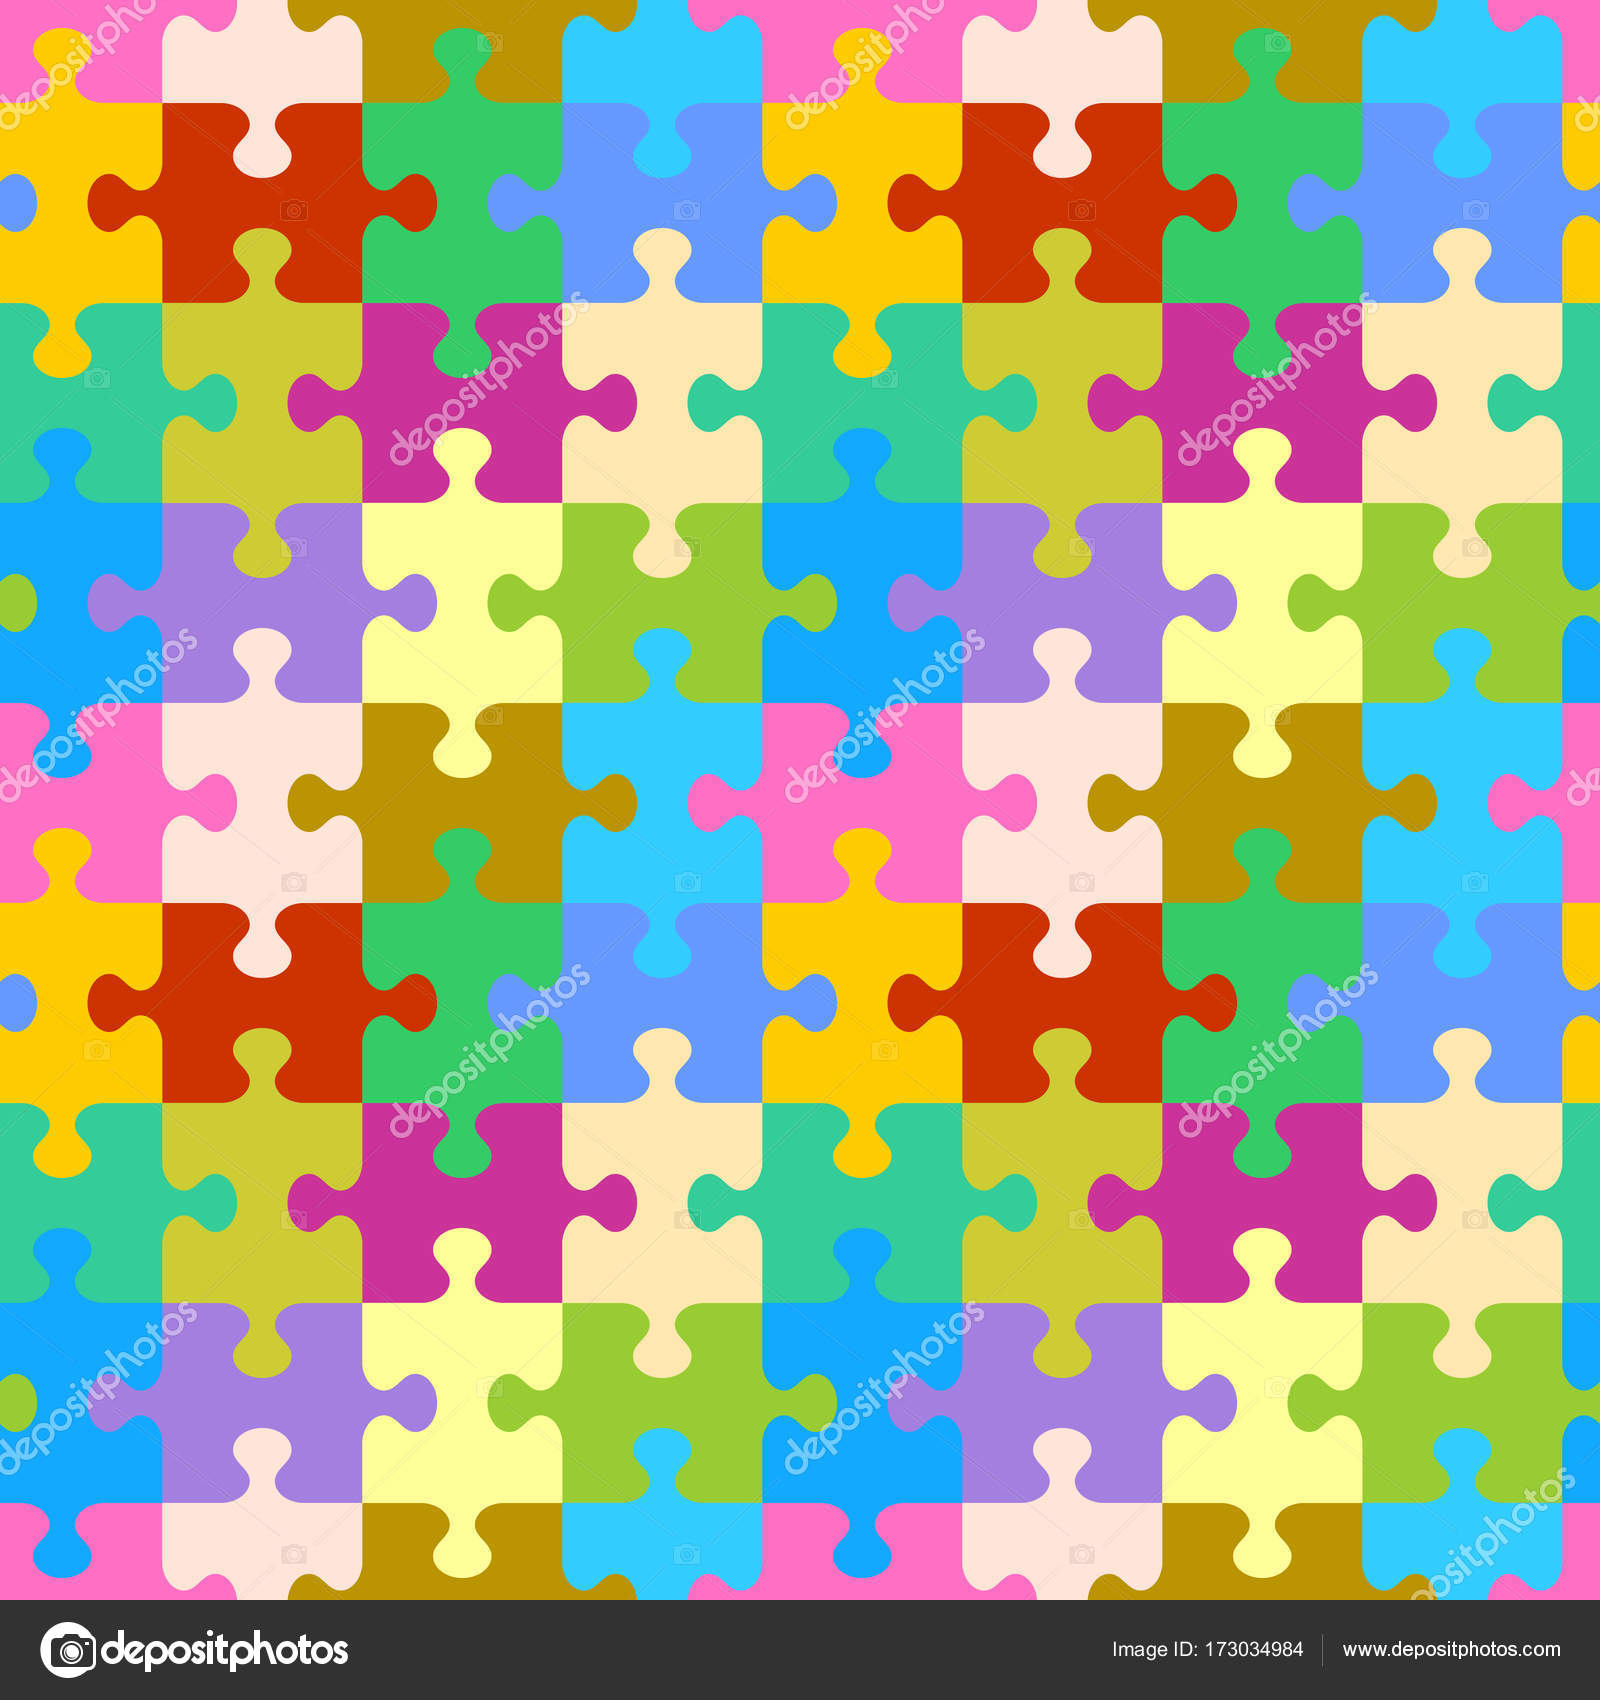 Seamless You See 4 Tiles Colorful Jigsaw Puzzle Pattern Background Print Swatch Or Wallpaper With Classically Shaped Pieces Vector By Ratselmeister